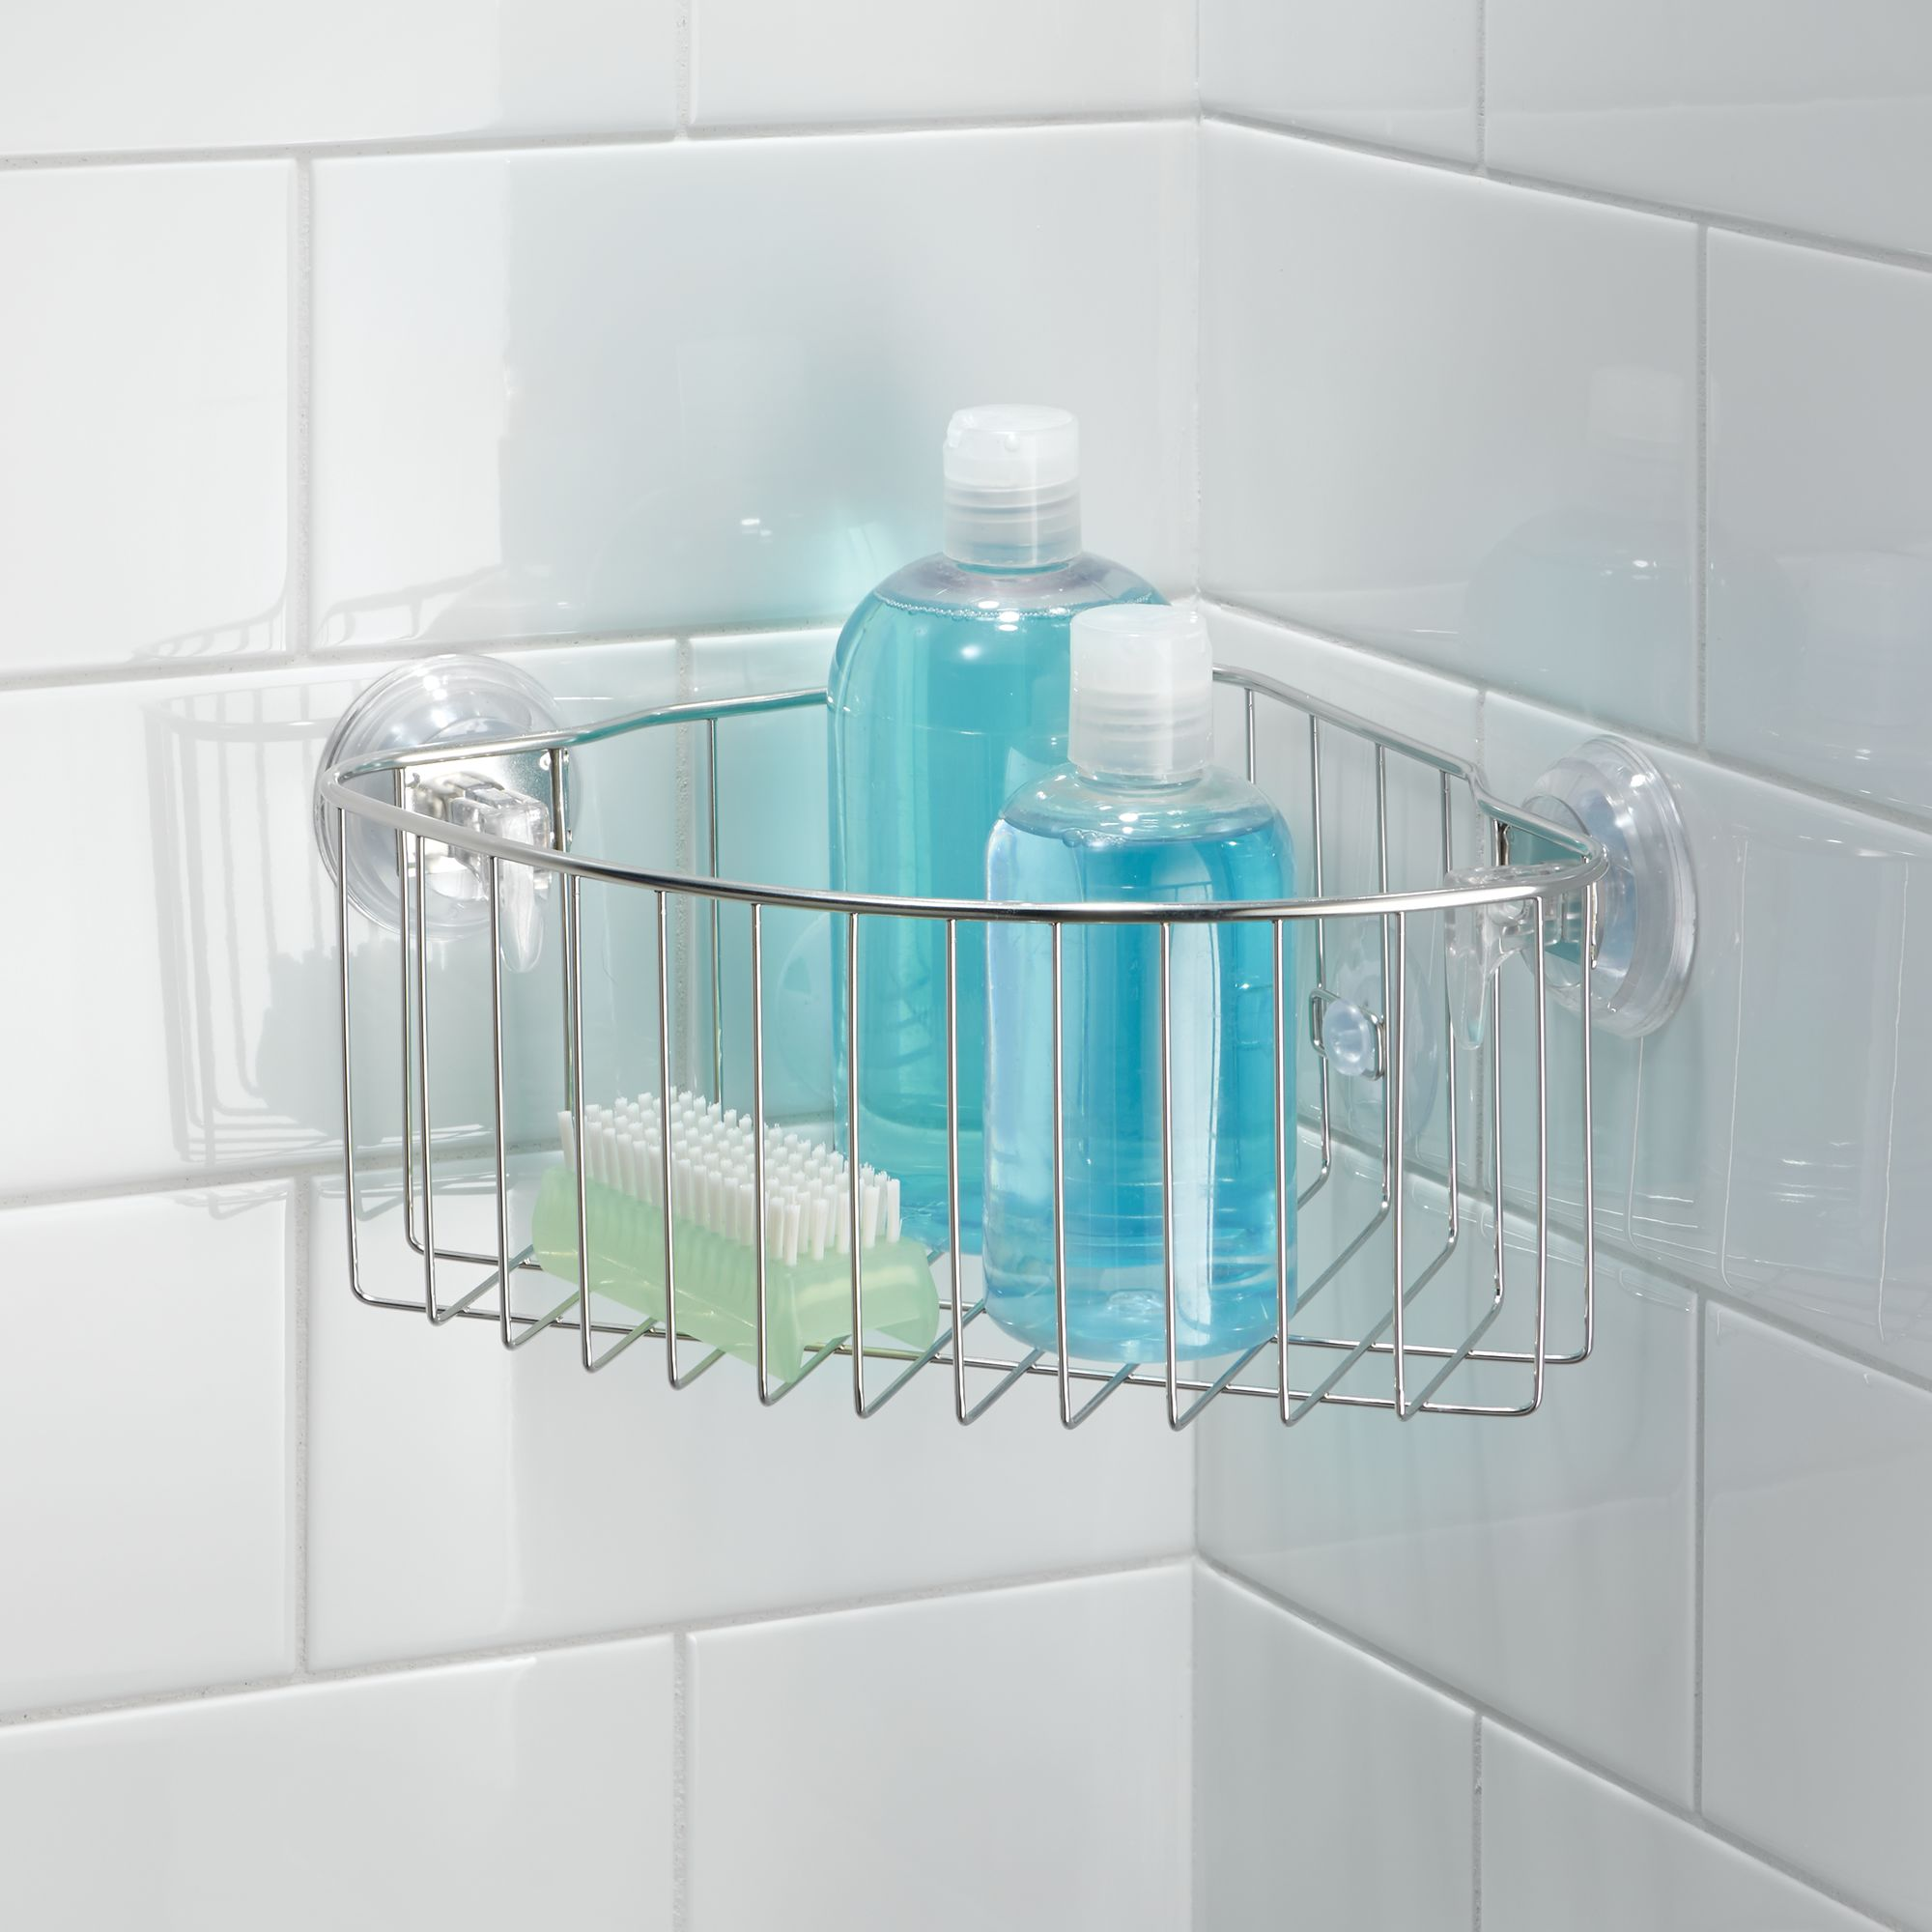 InterDesign Reo Powerlock Suction Corner Shower Basket Bath Caddy